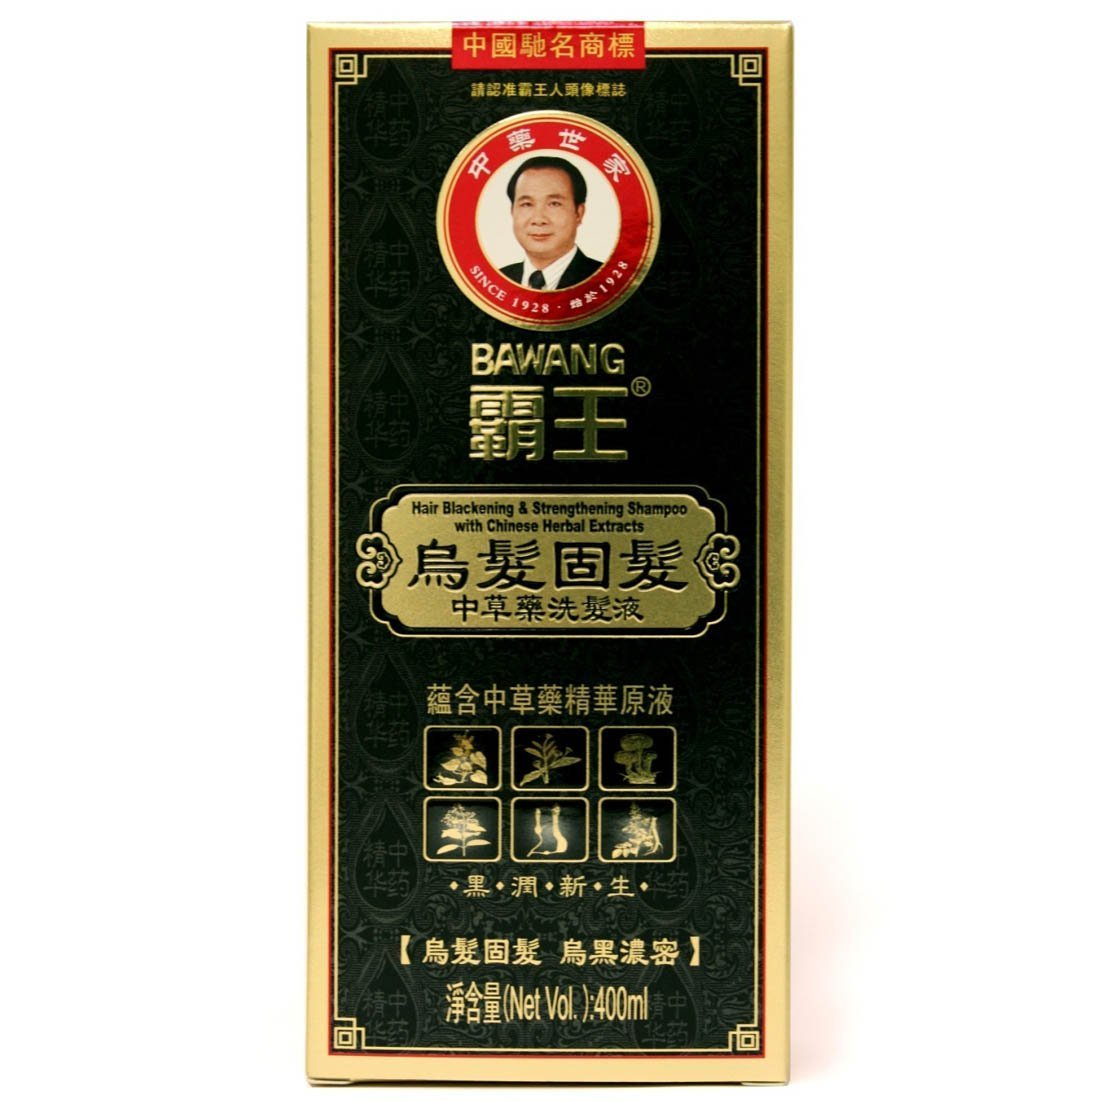 Bawang Hair Blackening & Strengthening Shampoo With Chinese Herbal Extracts 400Ml by Bawang